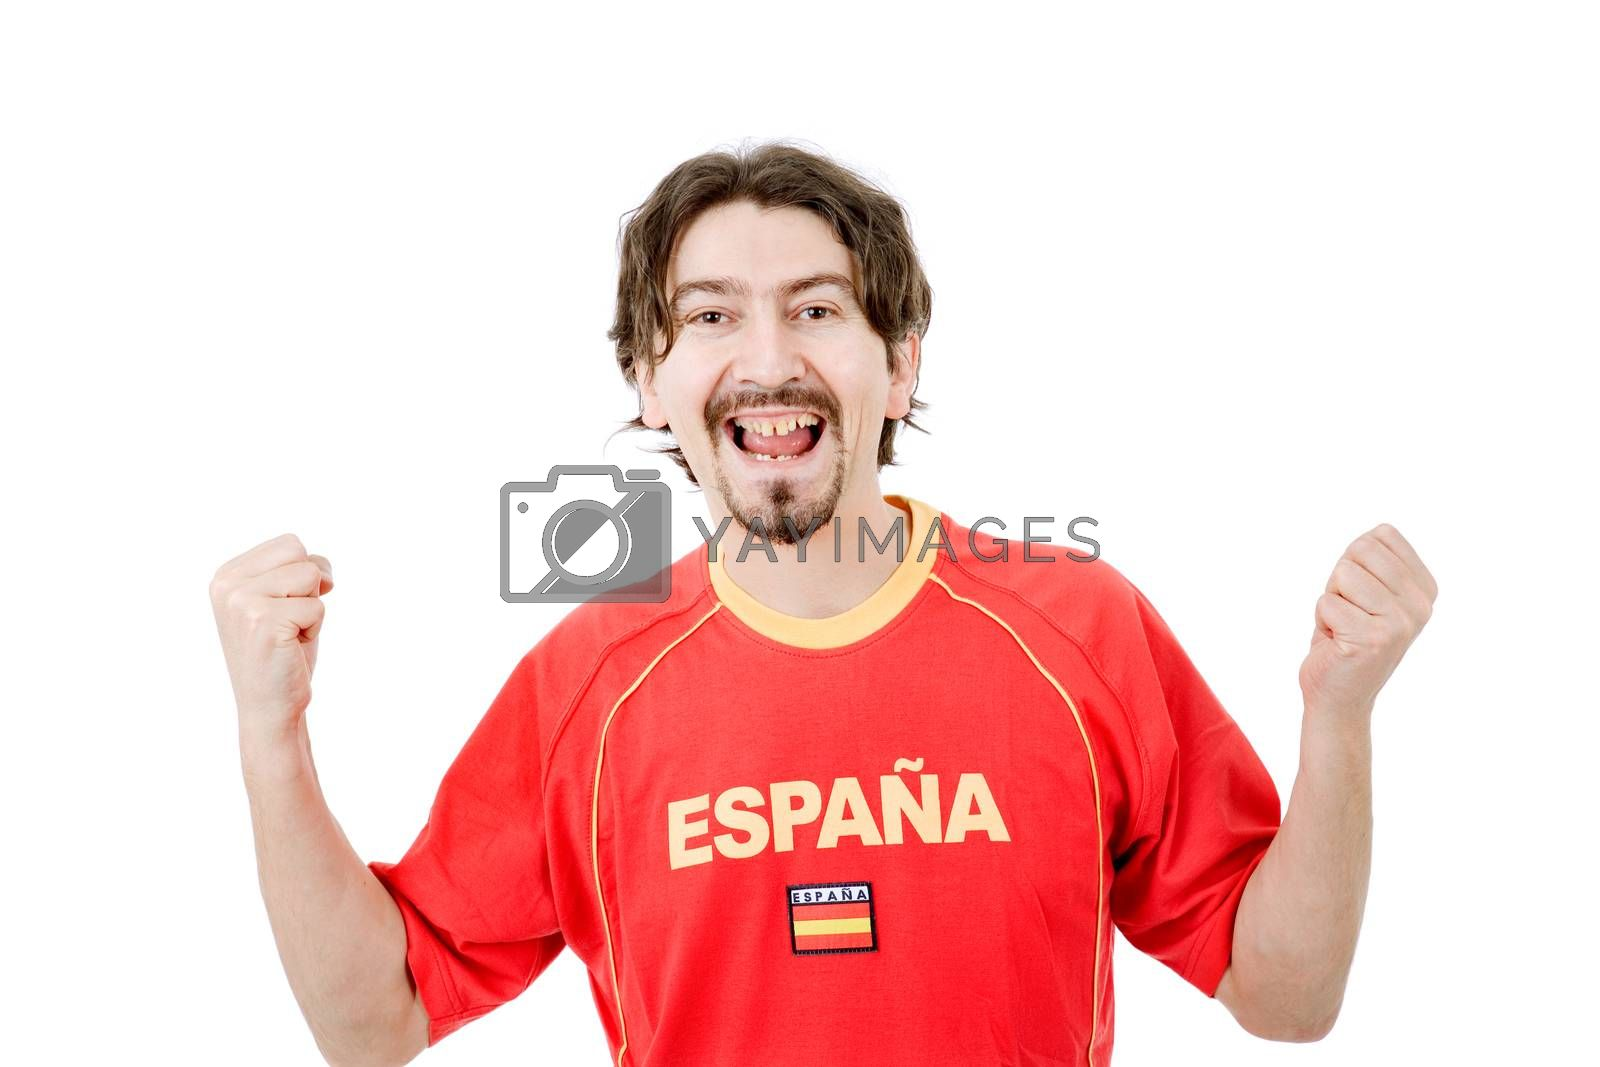 spanish fan by zittto